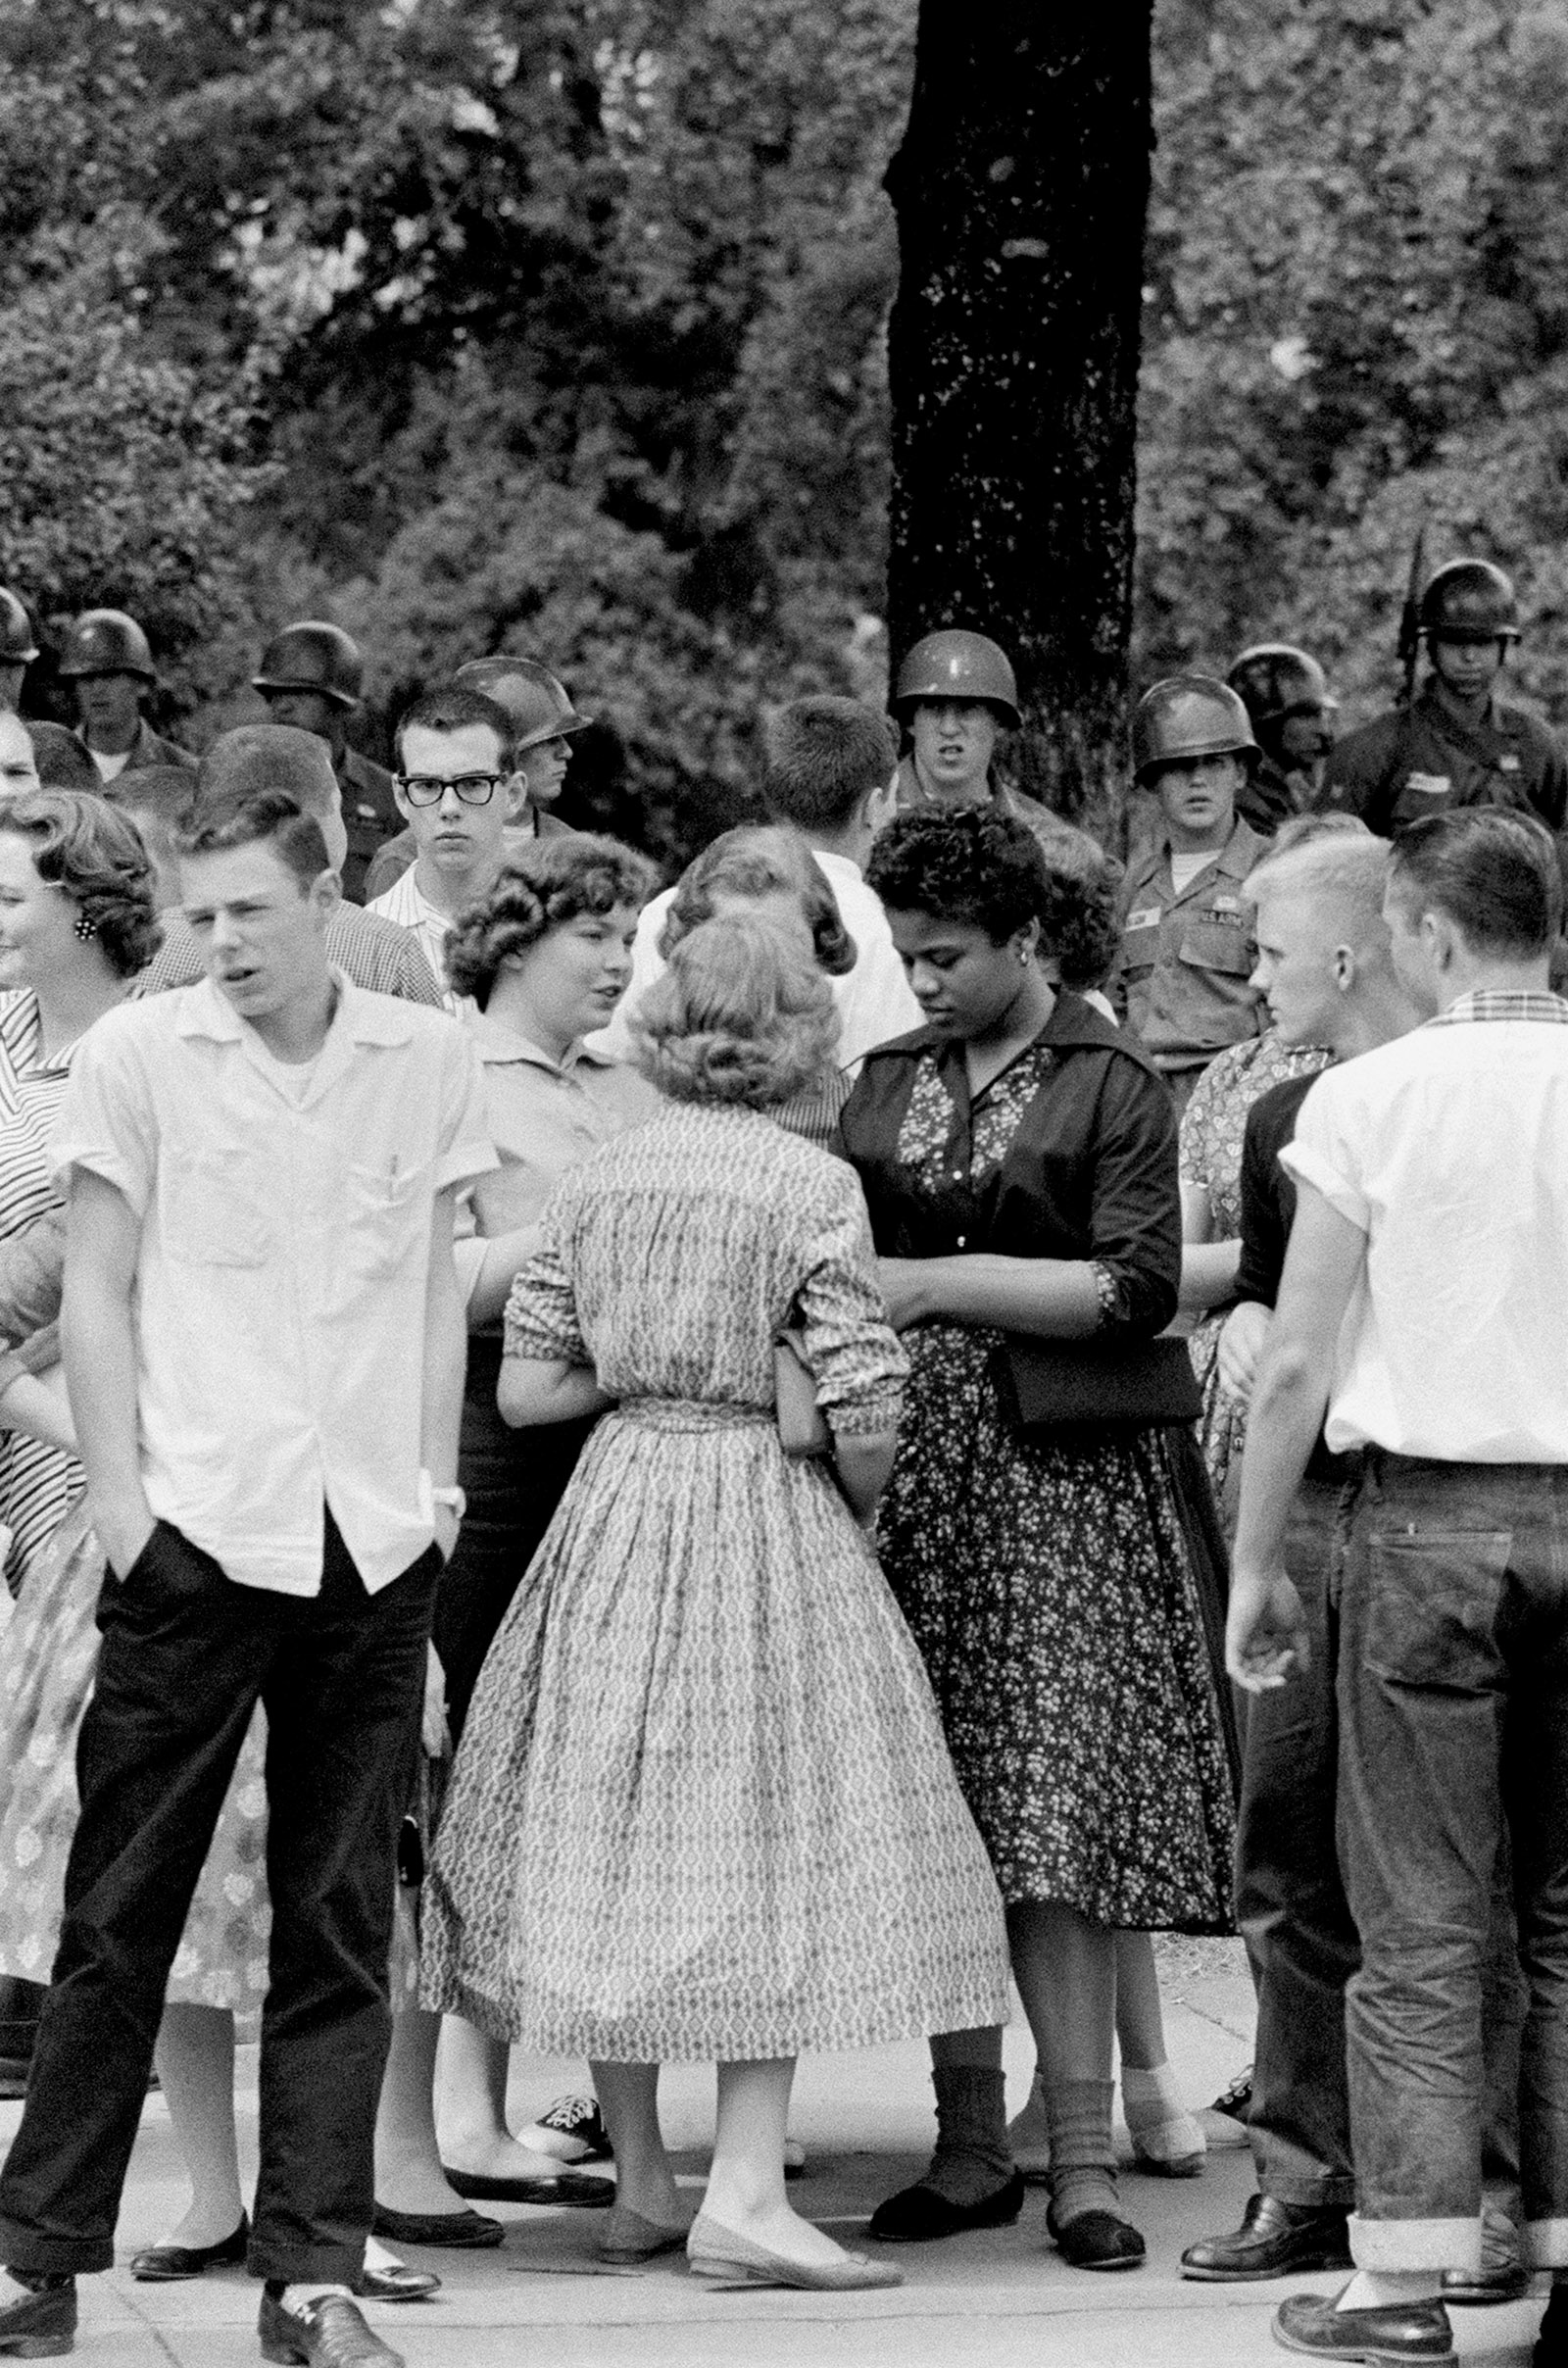 Recess on the first day of integration at Little Rock Central High School, Little Rock, Arkansas, 1957